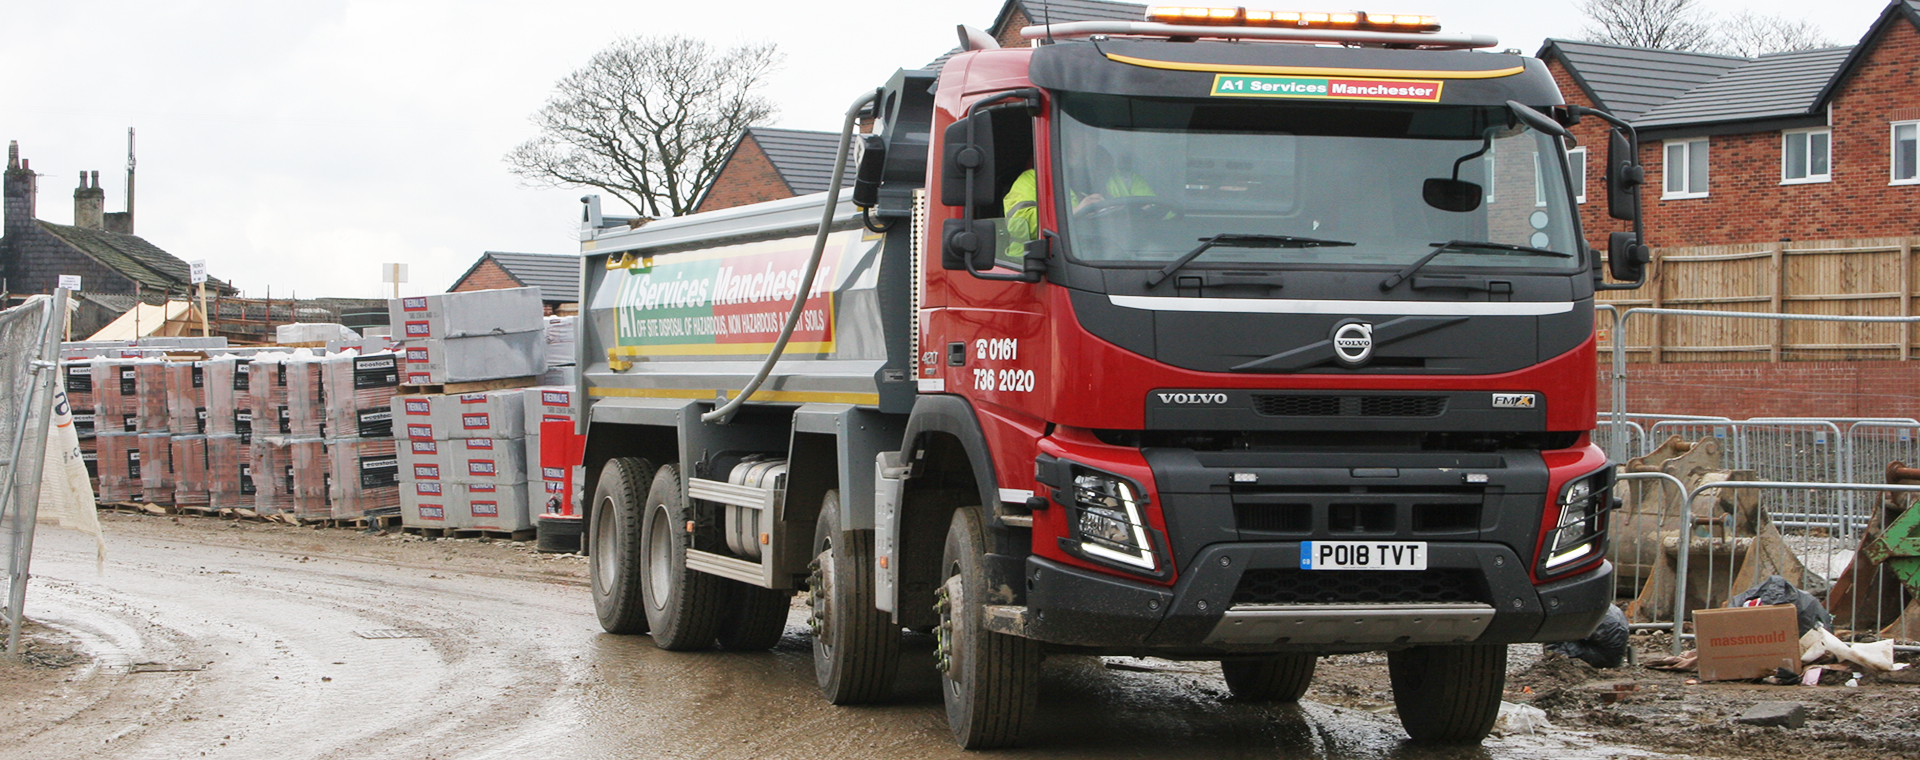 New tipper truck arriving on site